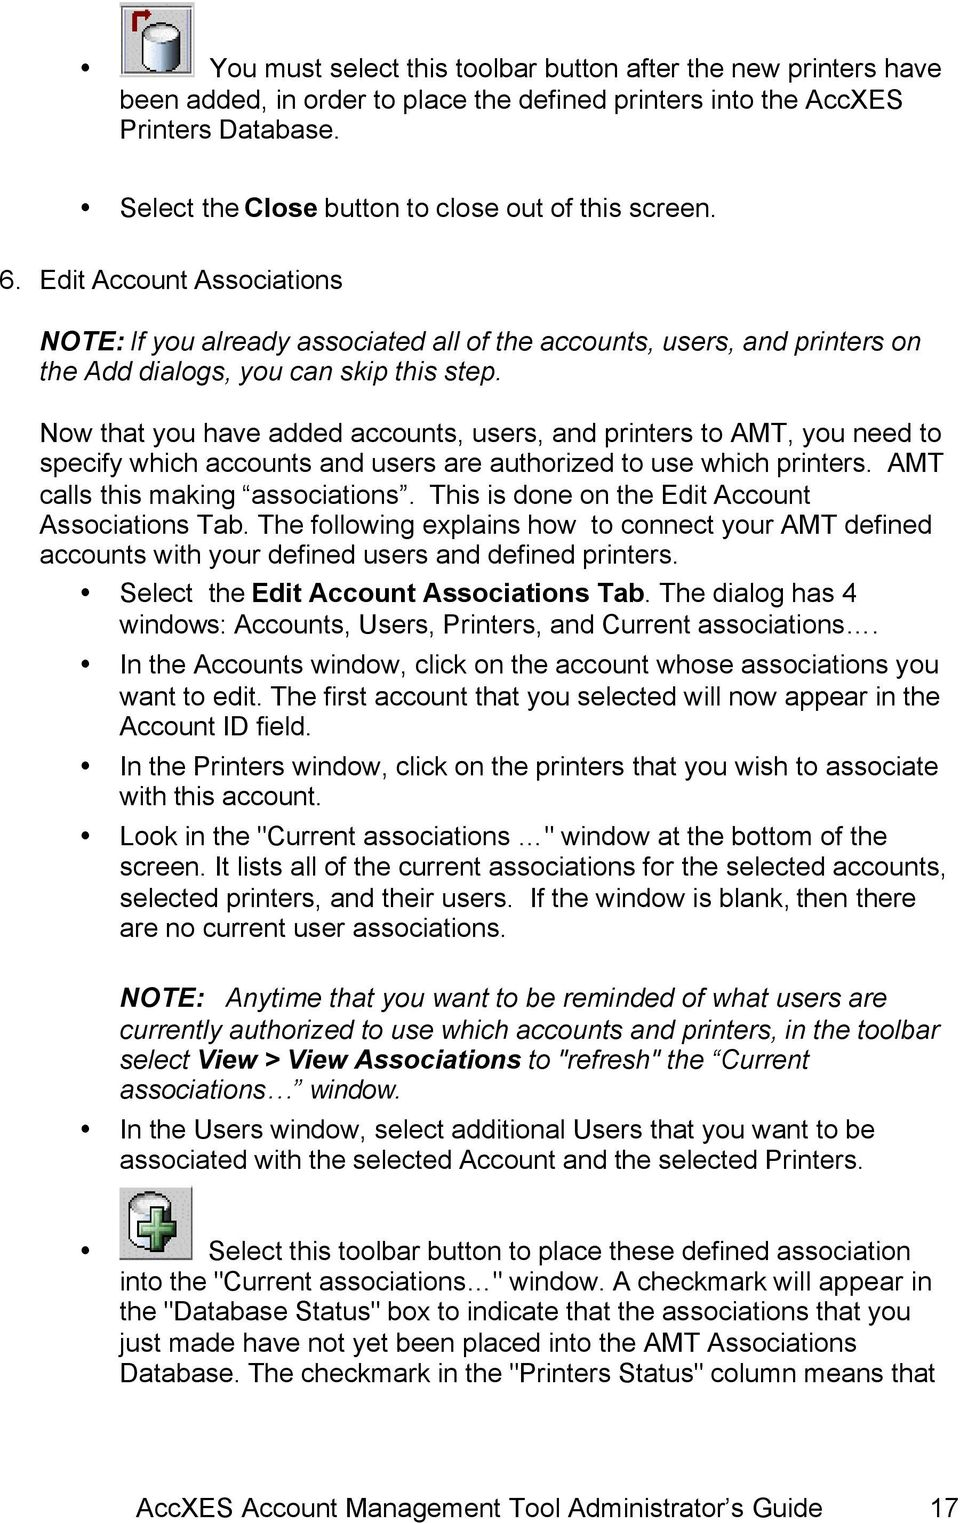 Now that you have added accounts, users, and printers to AMT, you need to specify which accounts and users are authorized to use which printers. AMT calls this making associations.